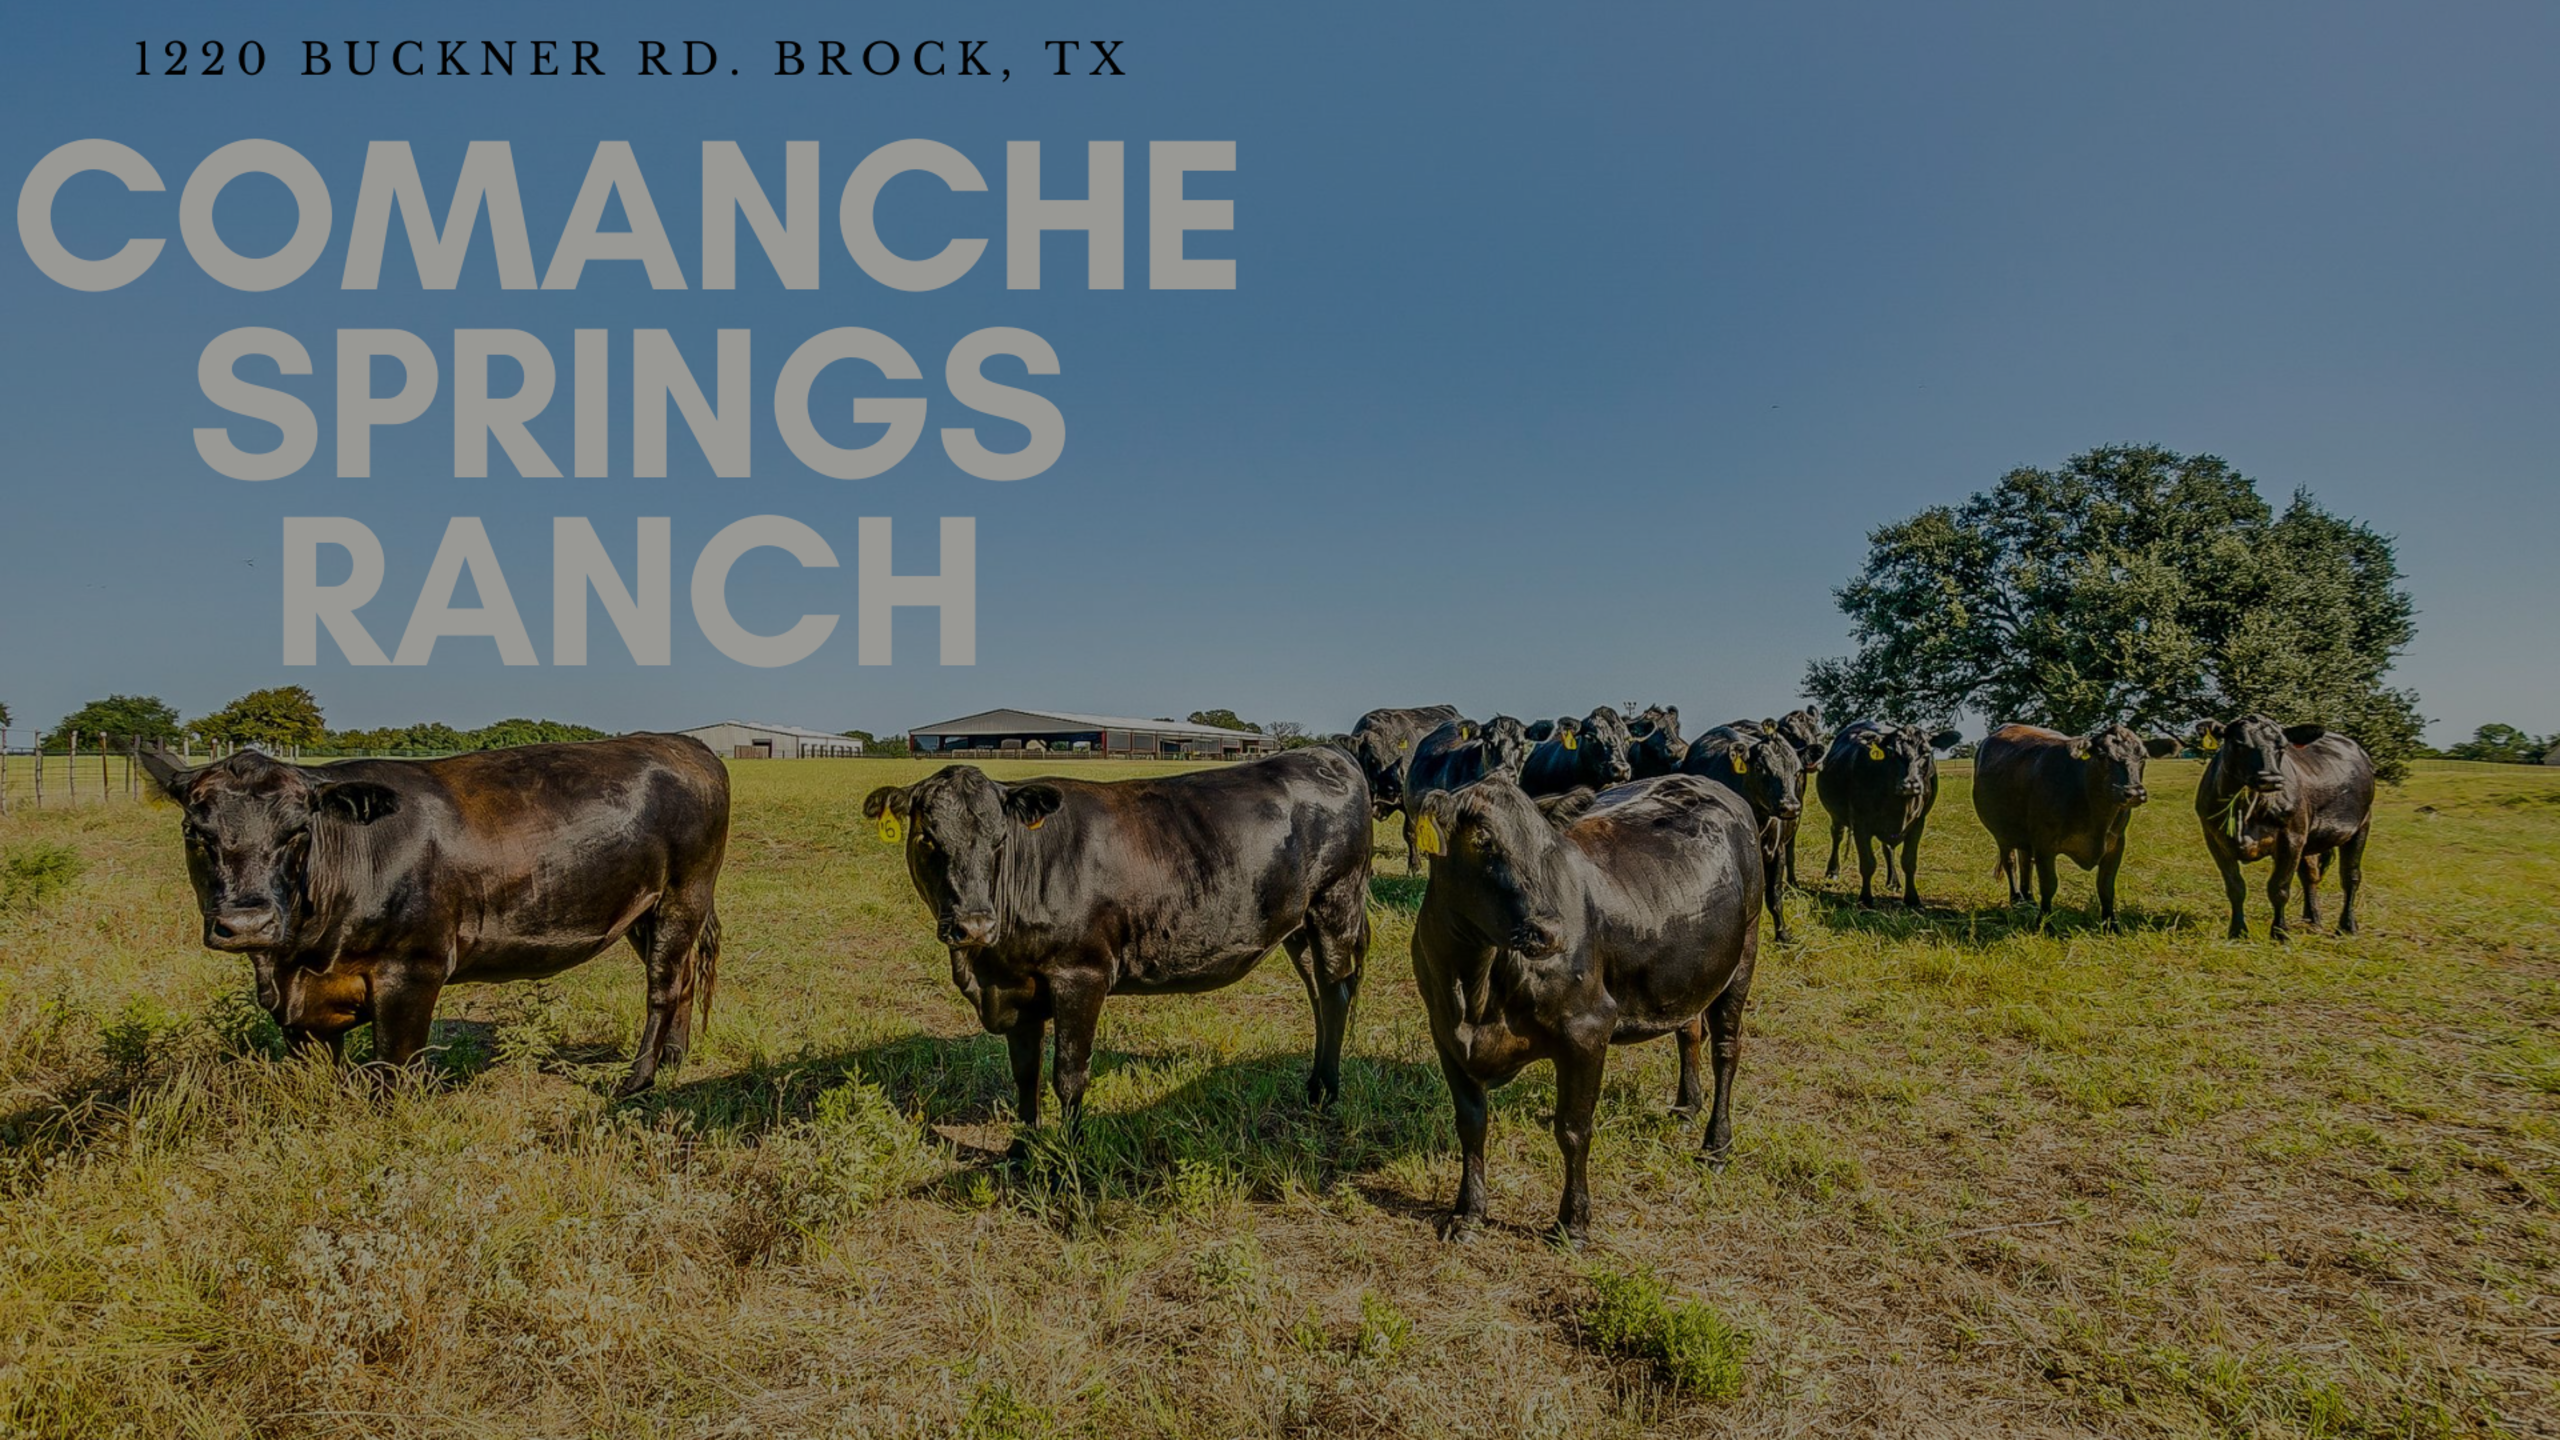 Comanche Springs Ranch – 1220 Buckner Rd. Brock, TX